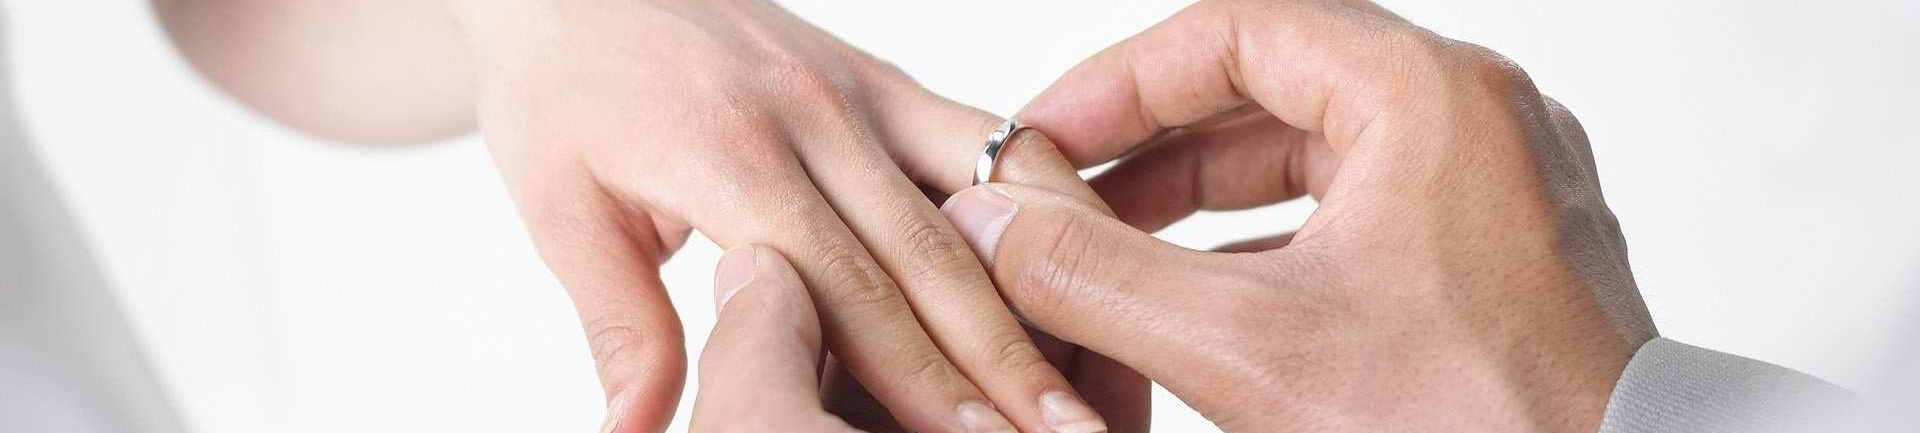 engagement-ring-and-wedding-ring-in-hands-6.jpg